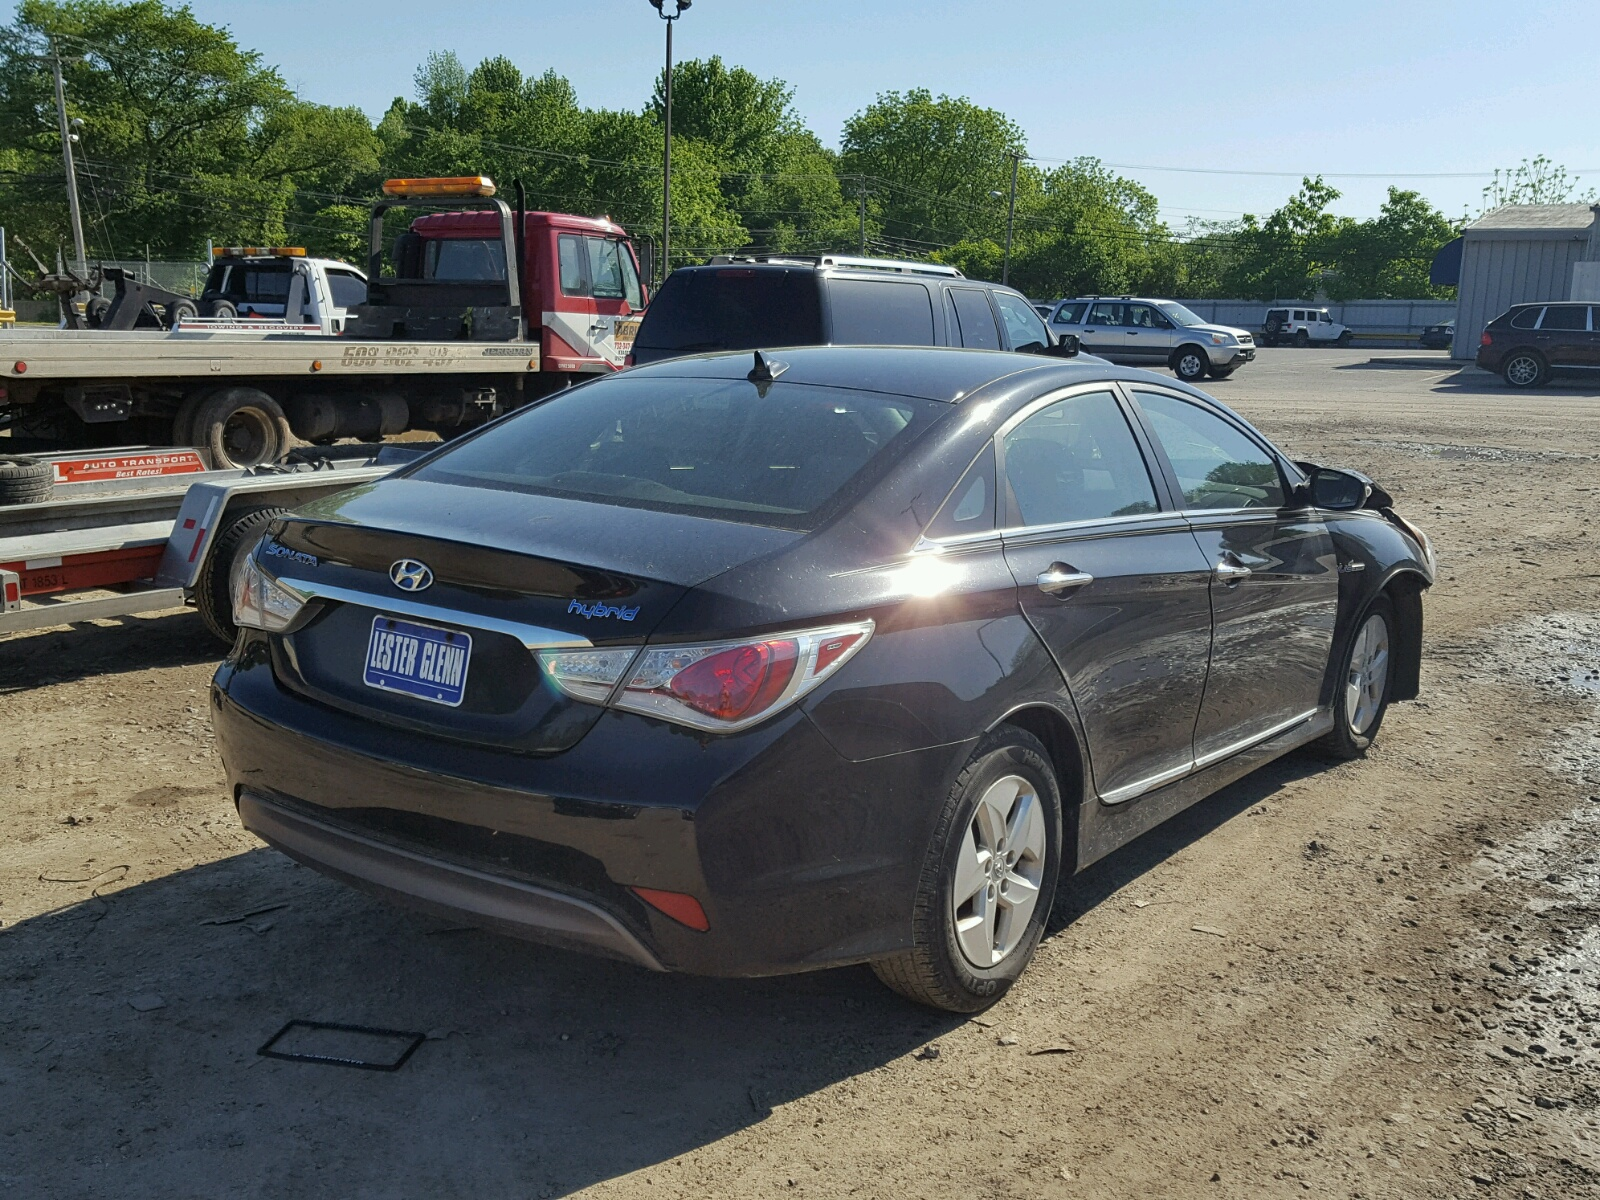 2011 Hyundai Sonata Hybrid for sale at Copart Glassboro NJ Lot